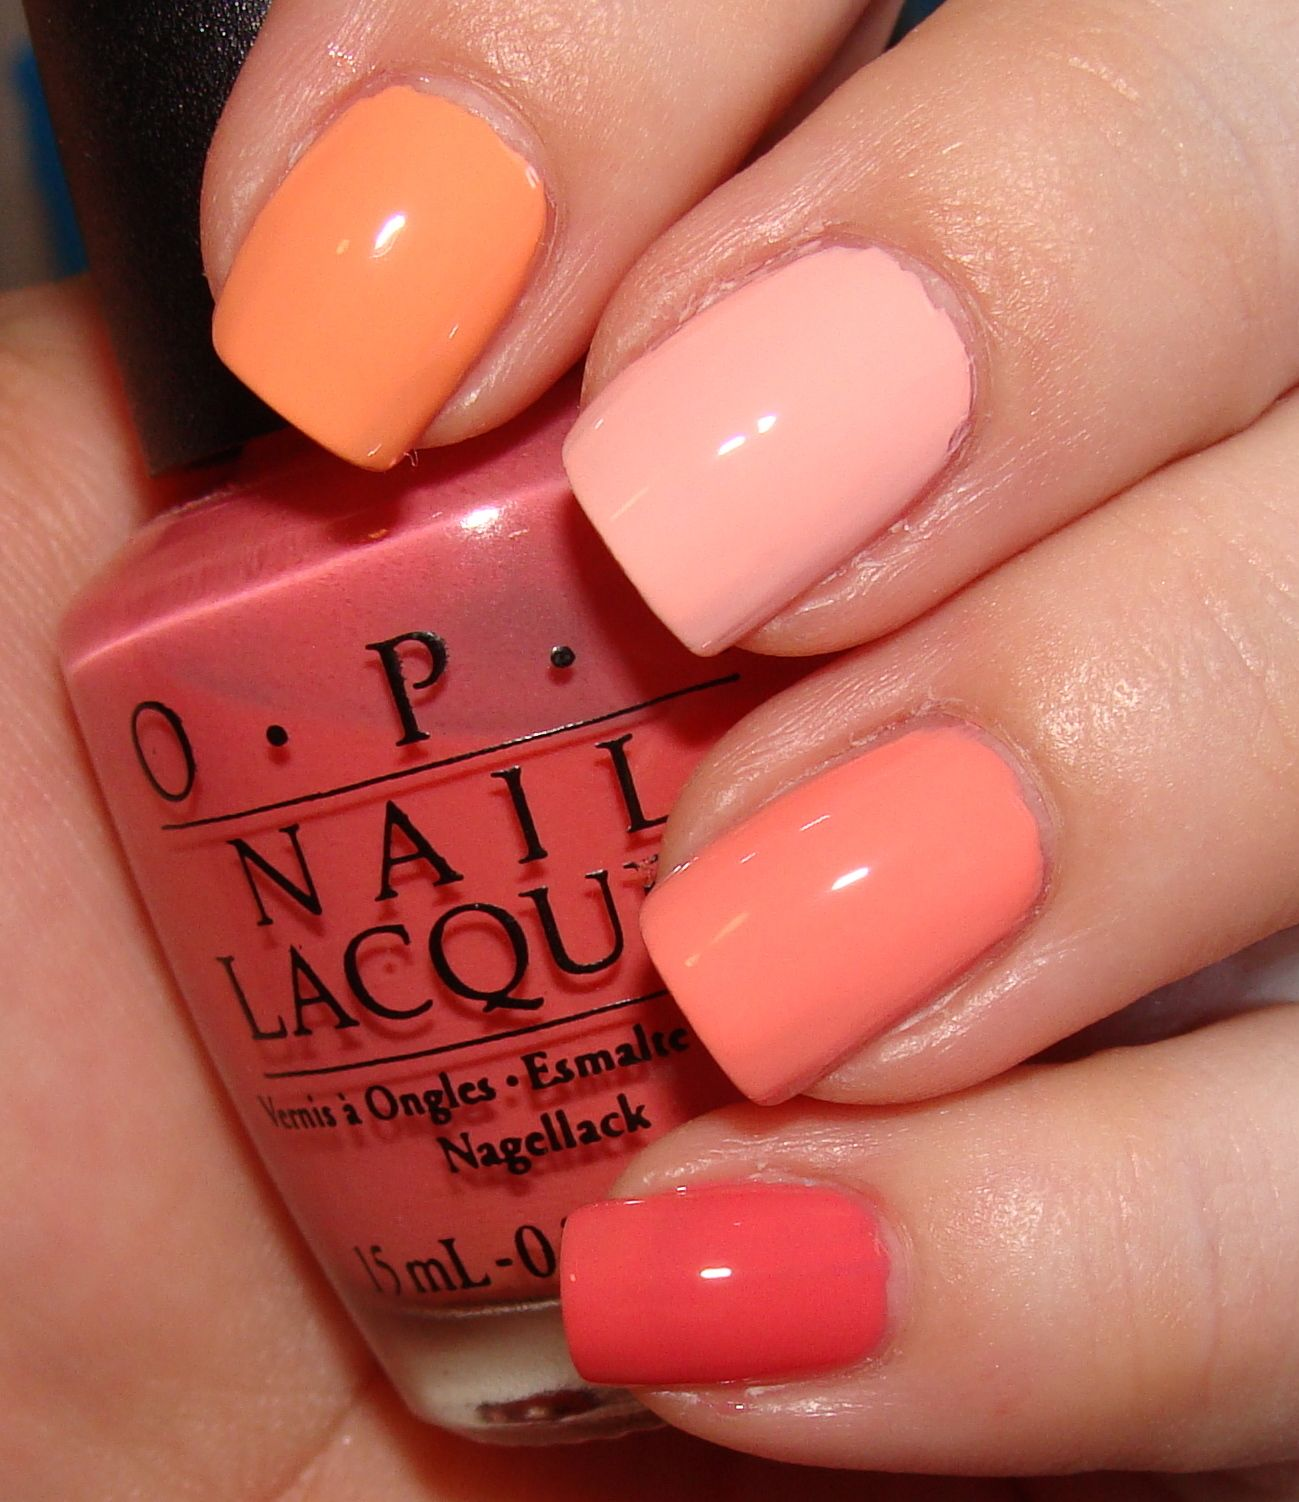 Pin by Patti Detrick on Nail art | Pinterest | Peach, Ombre and OPI